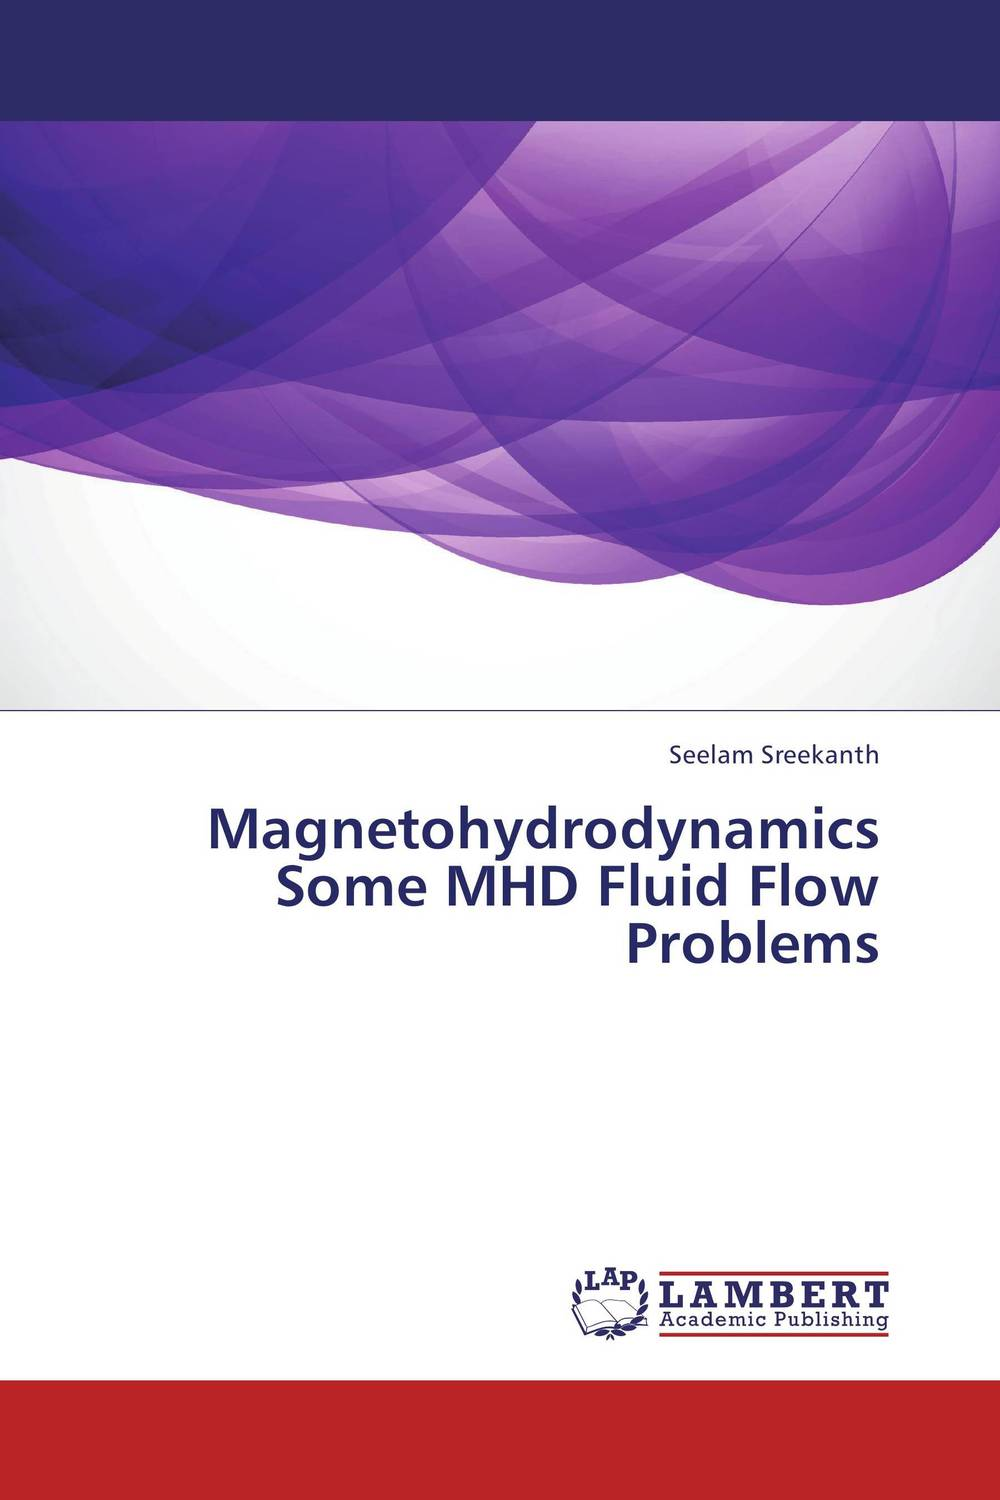 Magnetohydrodynamics Some MHD Fluid Flow Problems